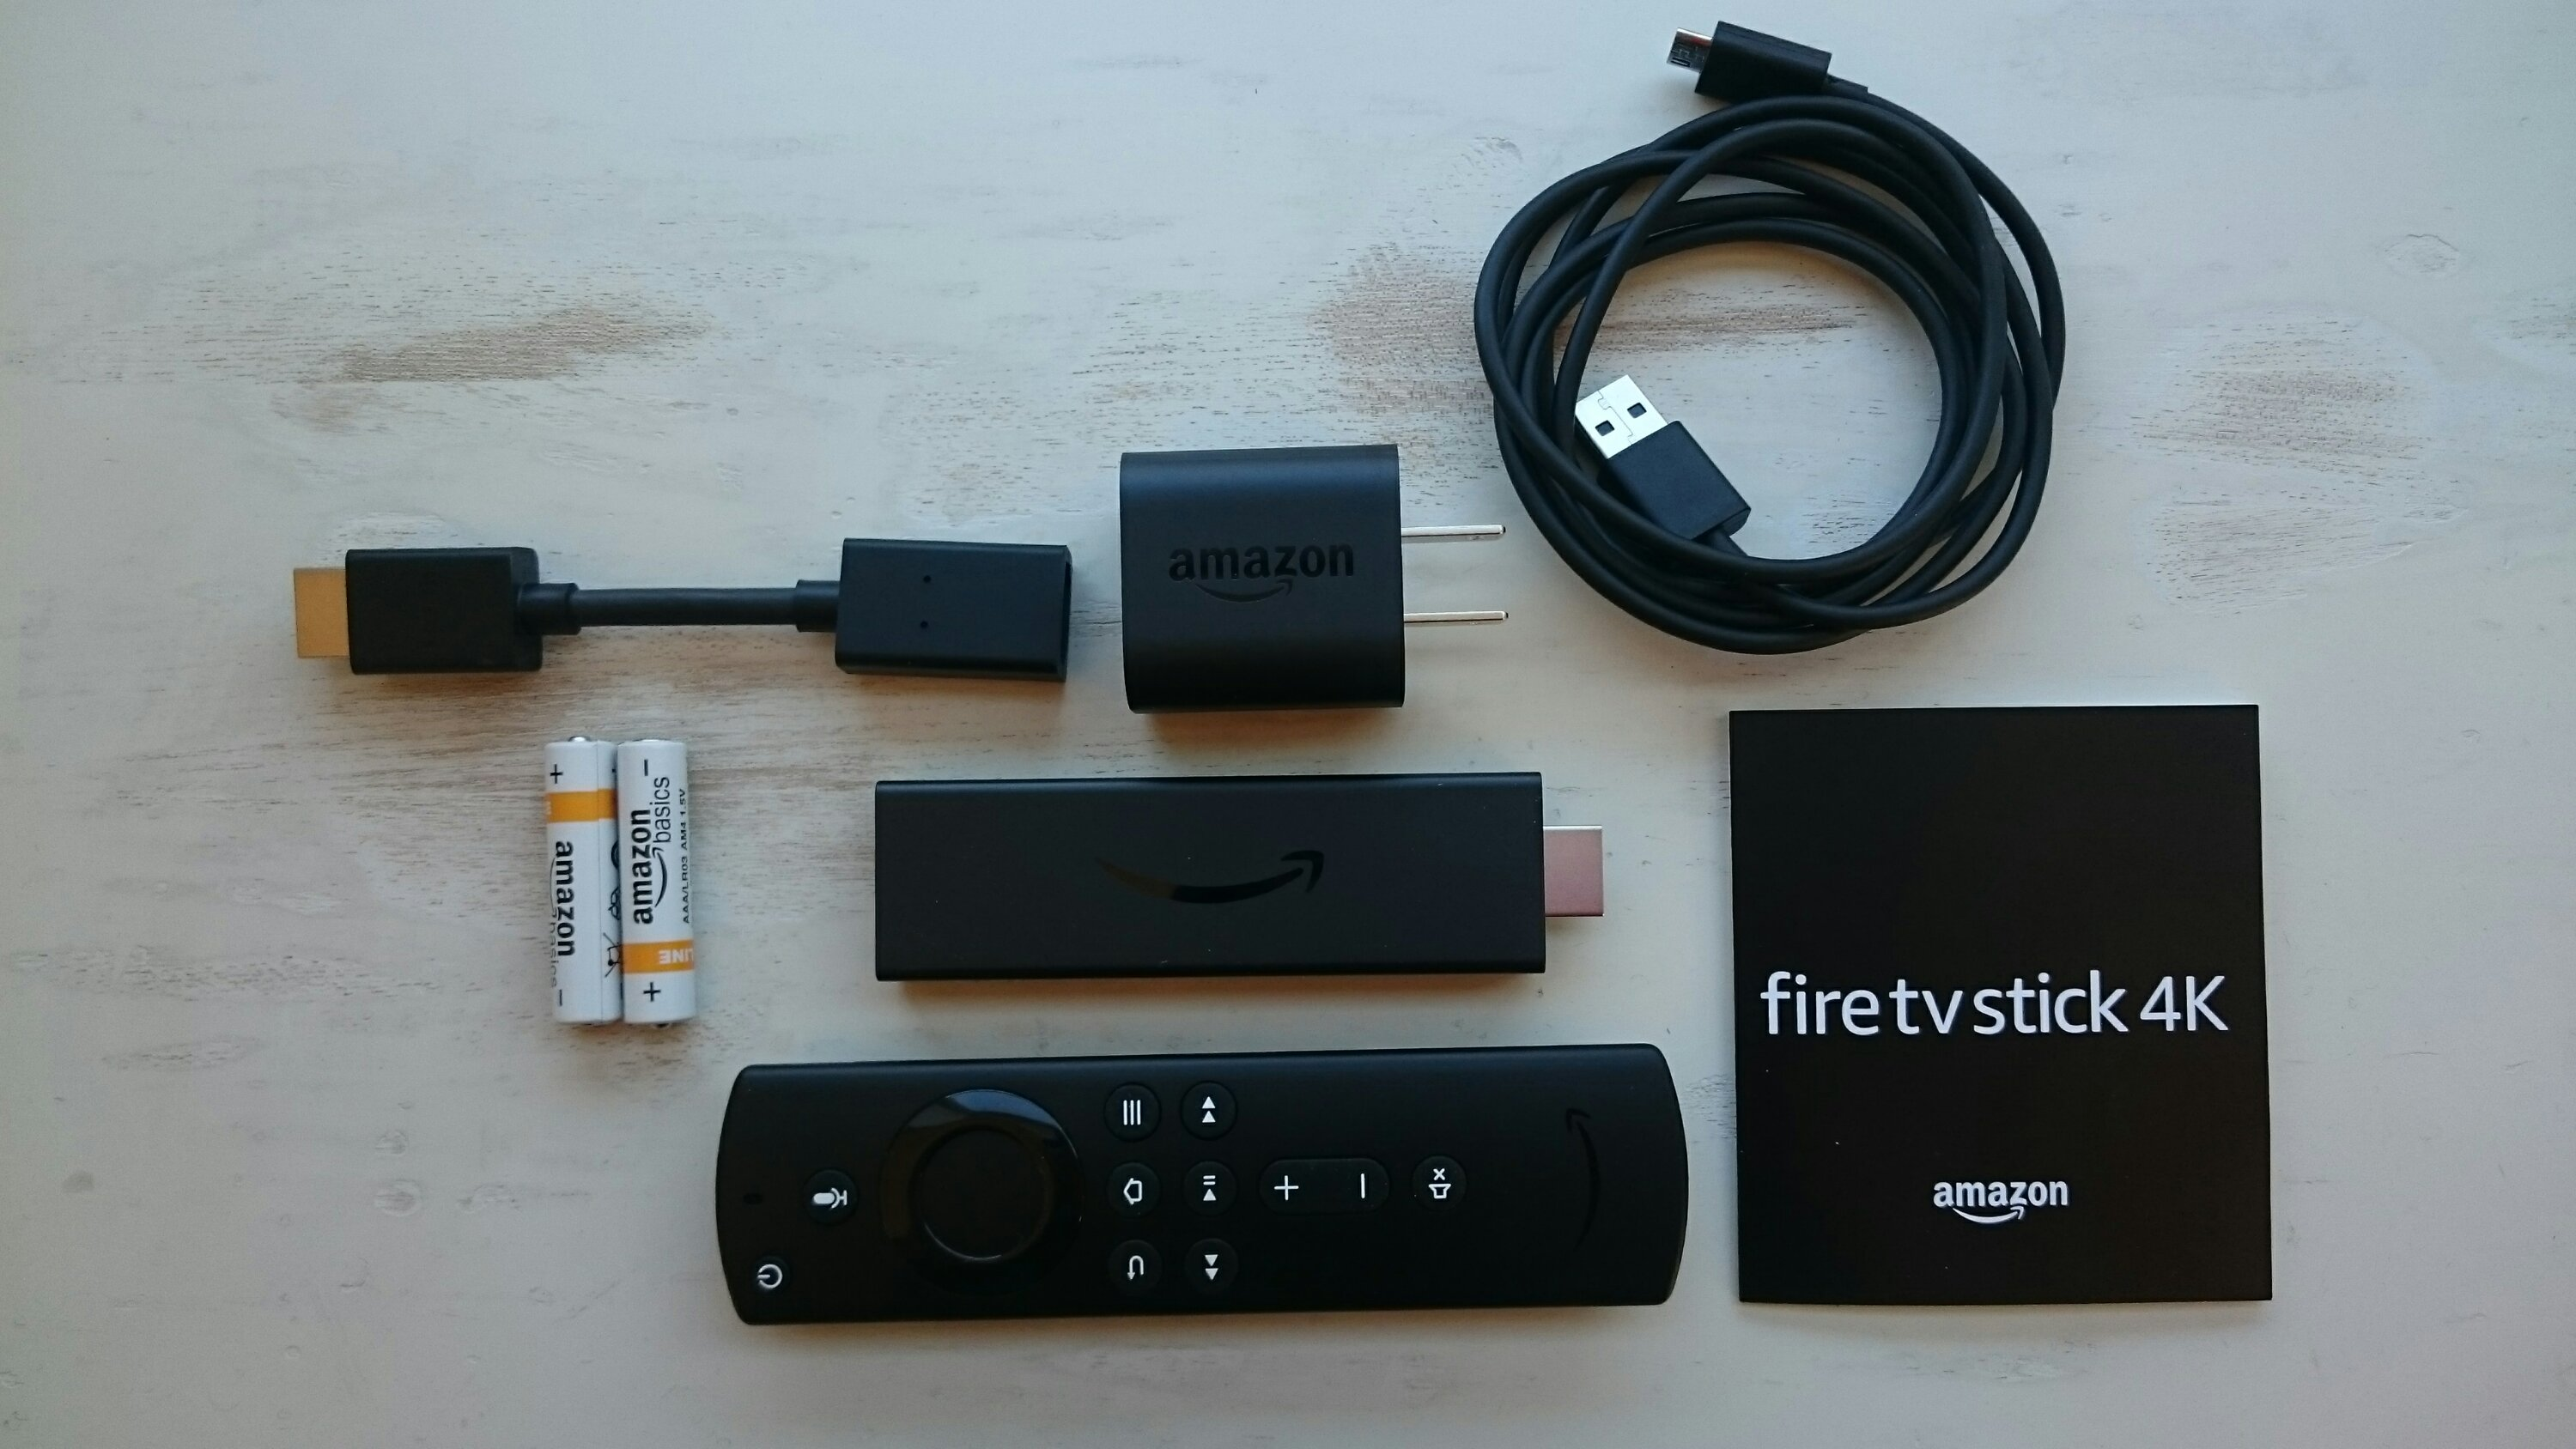 fire tv stick 4Kの箱の中身